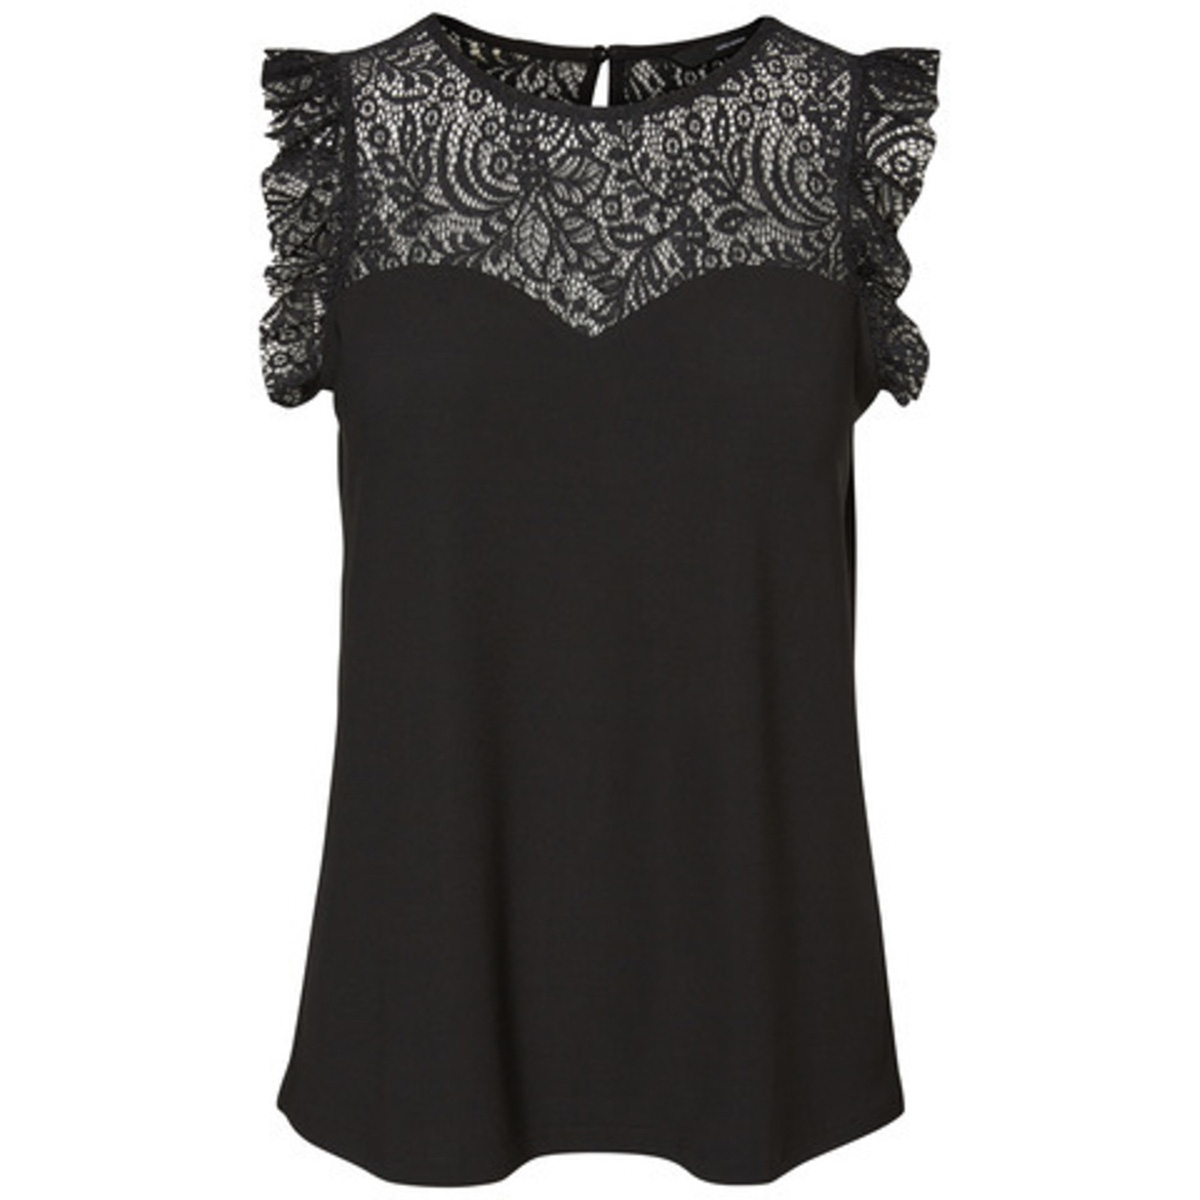 vmalberta sweetheart lace s/l top noos 10196238 vero moda top black